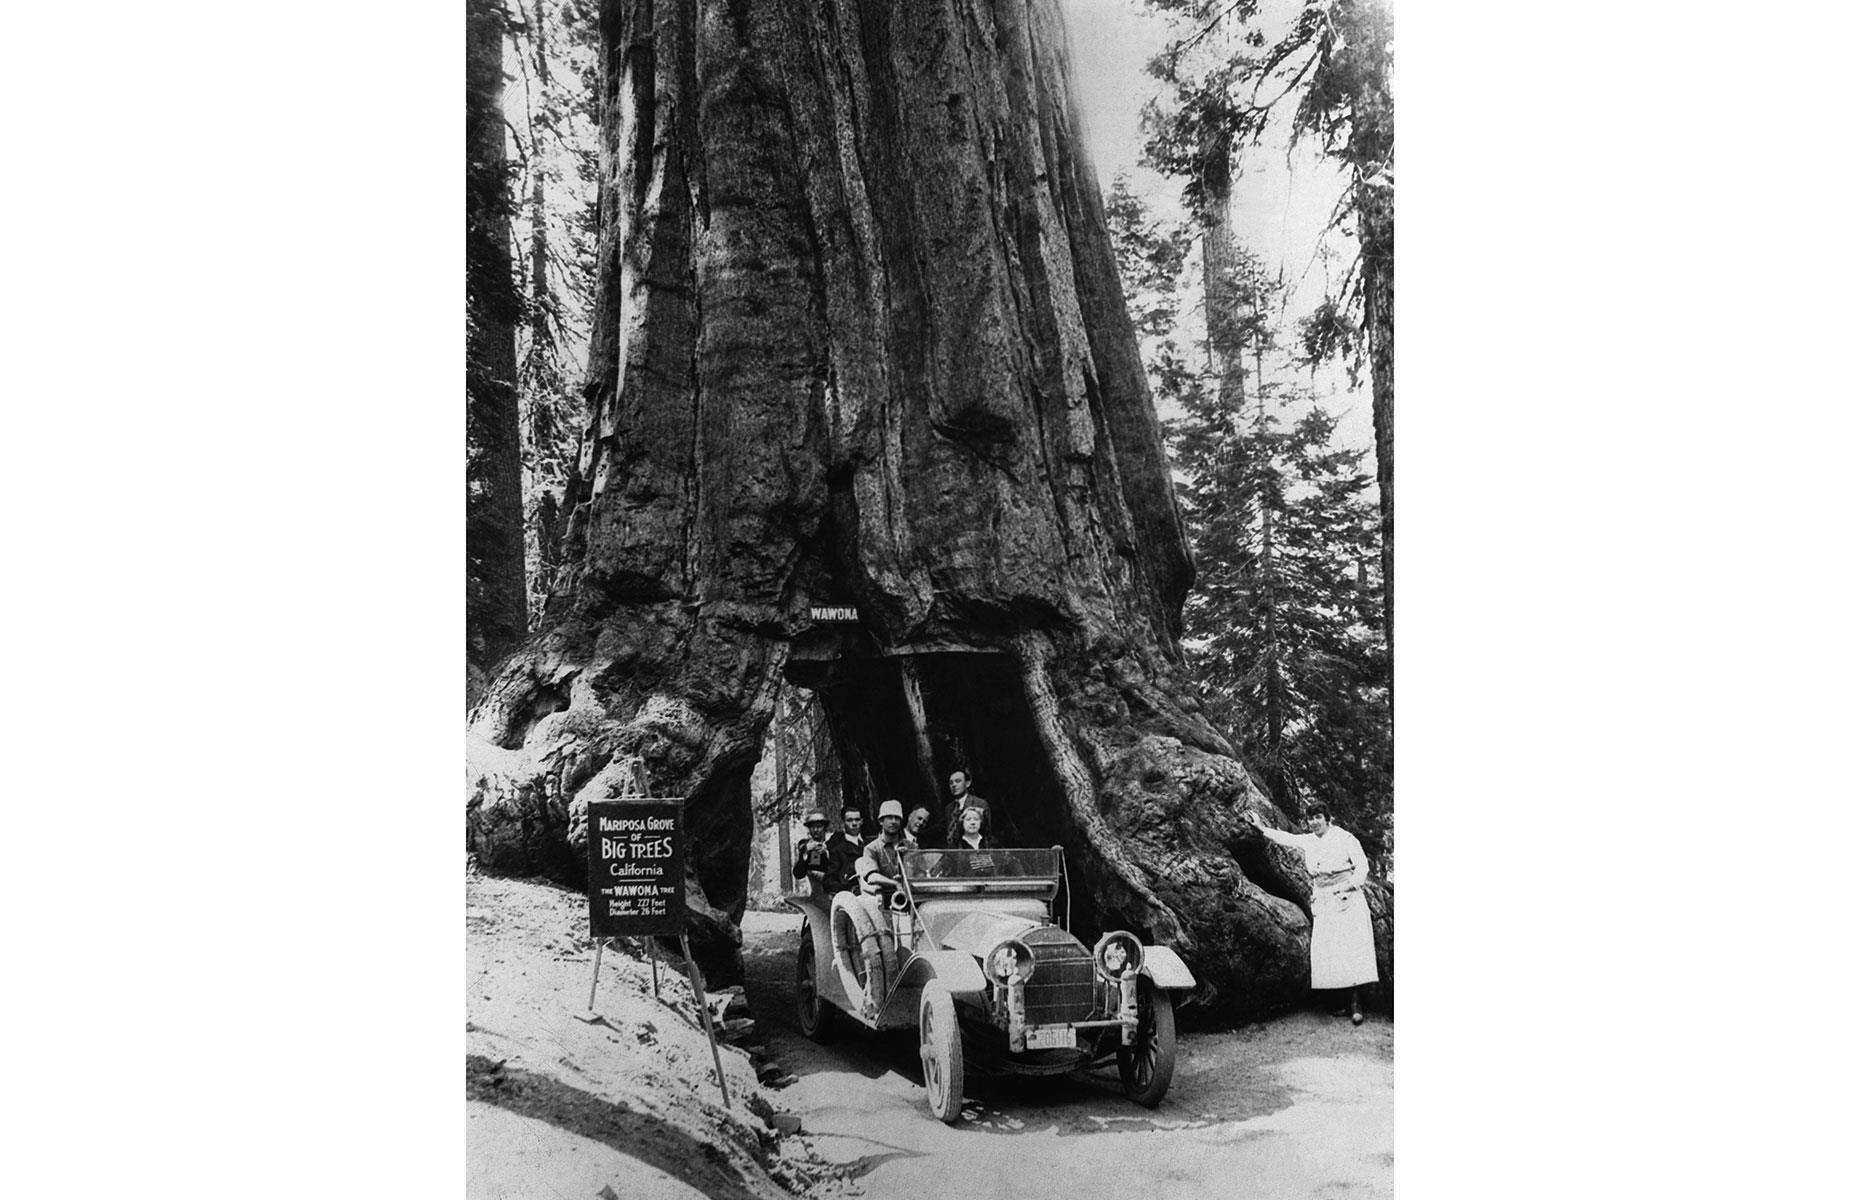 Slide 8 of 31: This giant sequoia tree could once have been found tucked away in Mariposa Grove in the Golden State's Yosemite National Park. Mighty impressive in its own right, the ancient tree had a tunnel carved into its base in 1881, drawing tourists who delighted in driving and walking through its trunk. Park-goers are pictured here enjoying the attraction in the early 20th century.